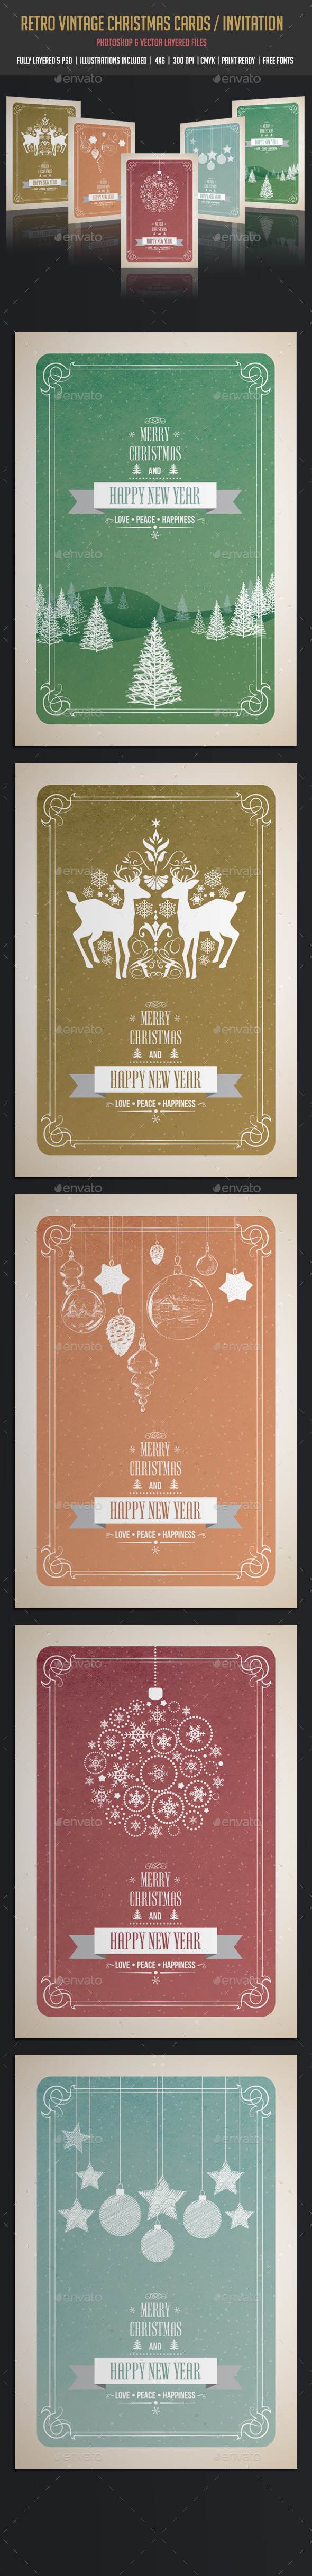 GraphicRiver Vintage & Retro Christmas Cards Invitation 9641195